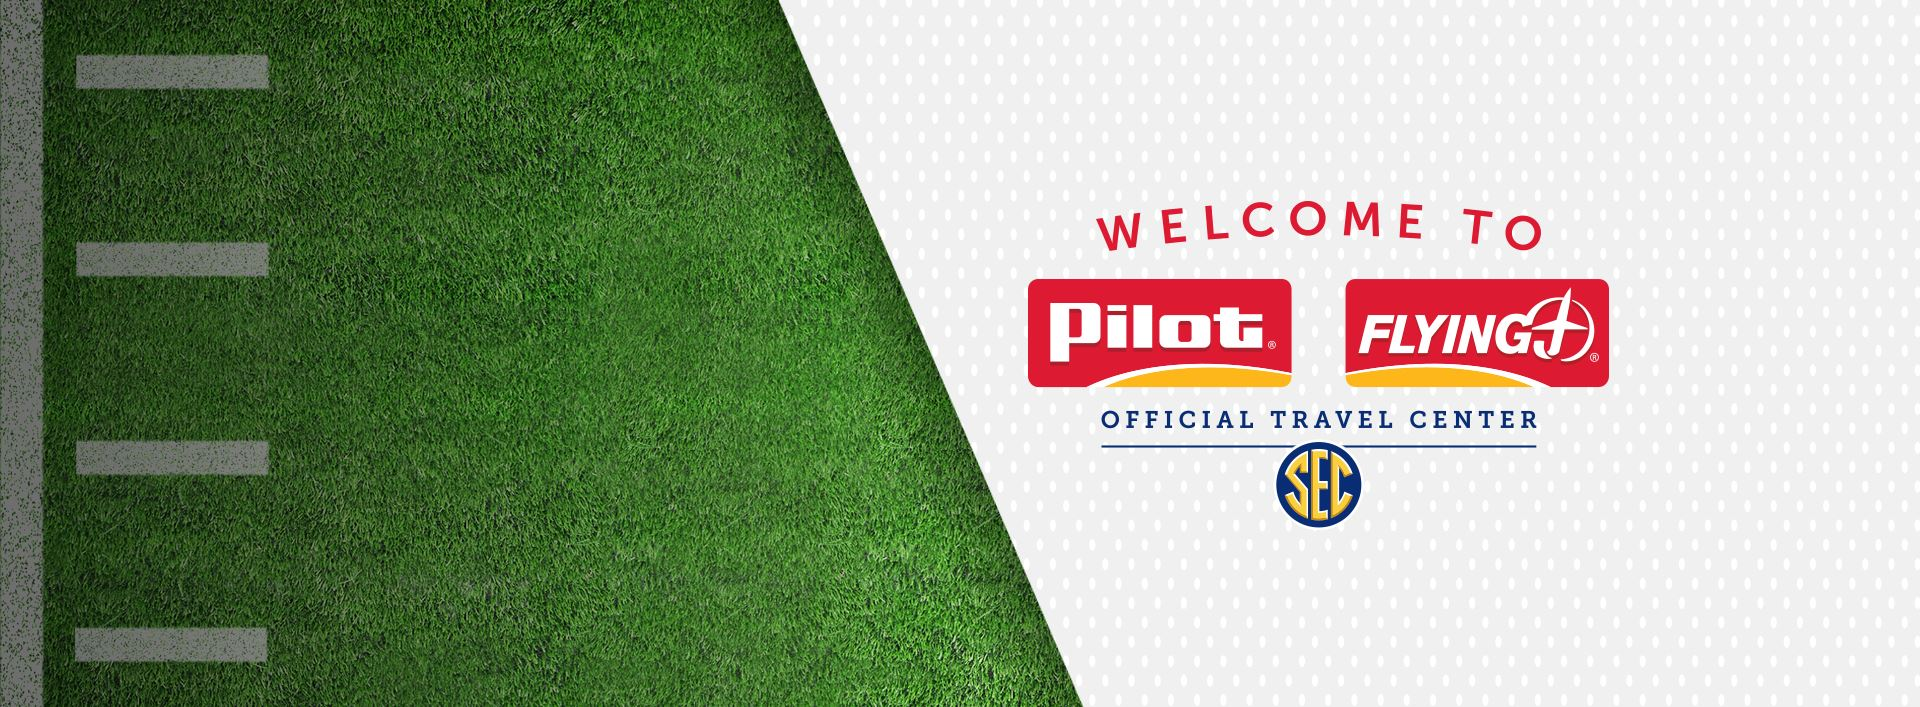 Pilot Flying J Official Travel Center of the SEC